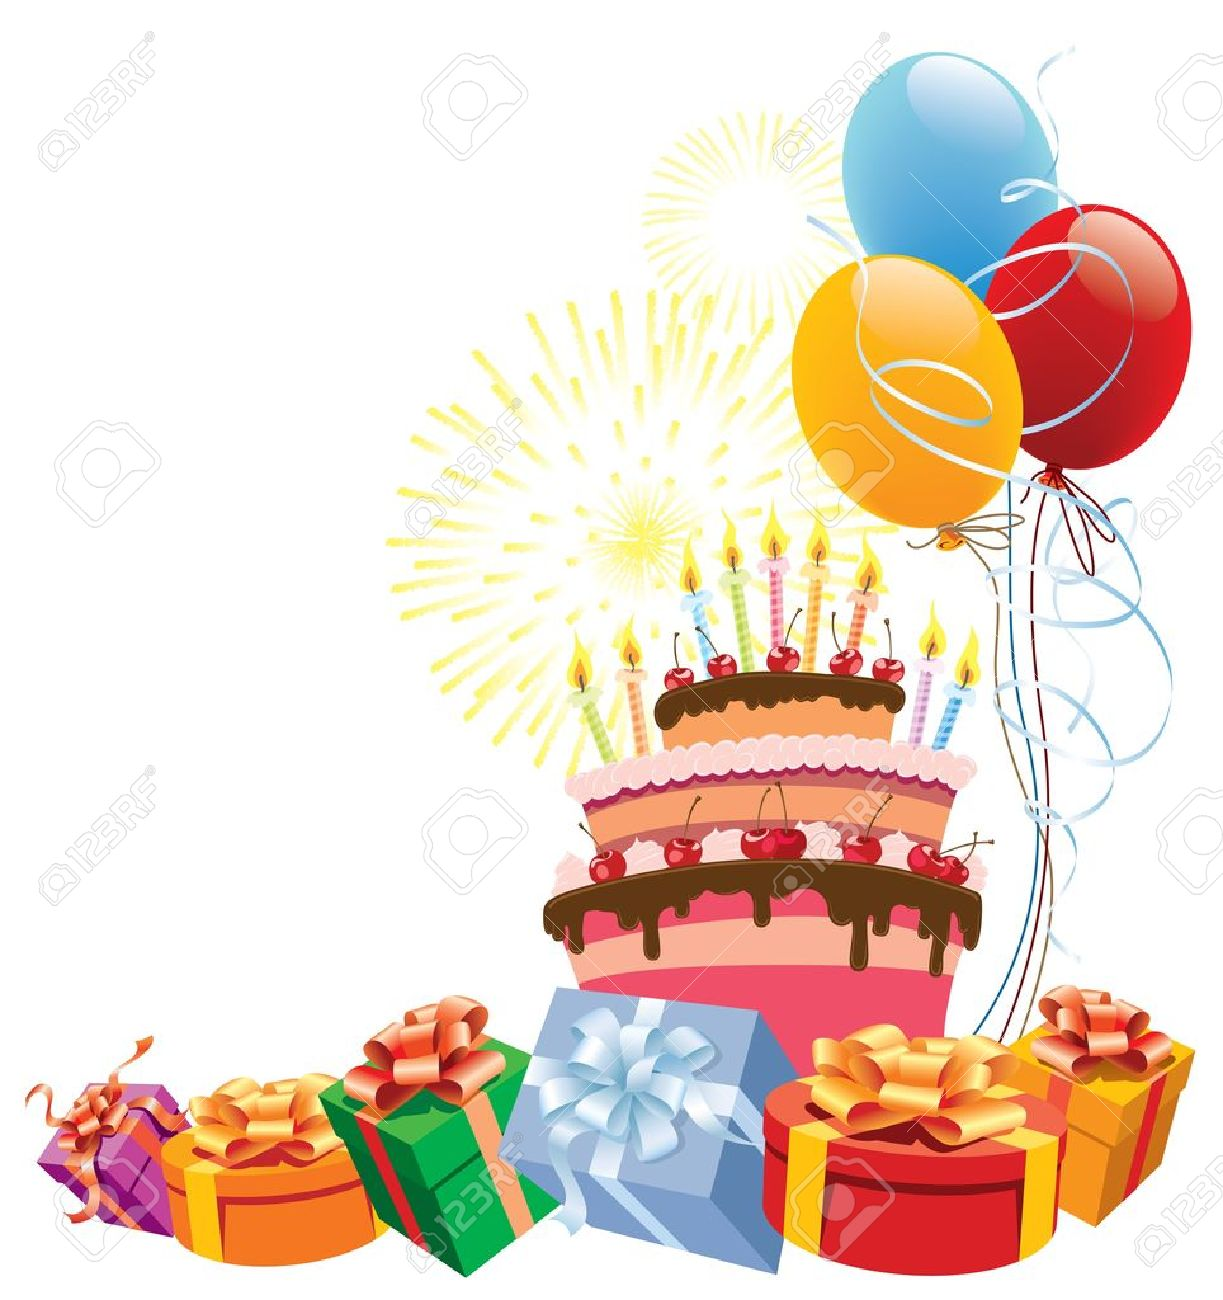 Colorful birthday cake with balloons and gifts..